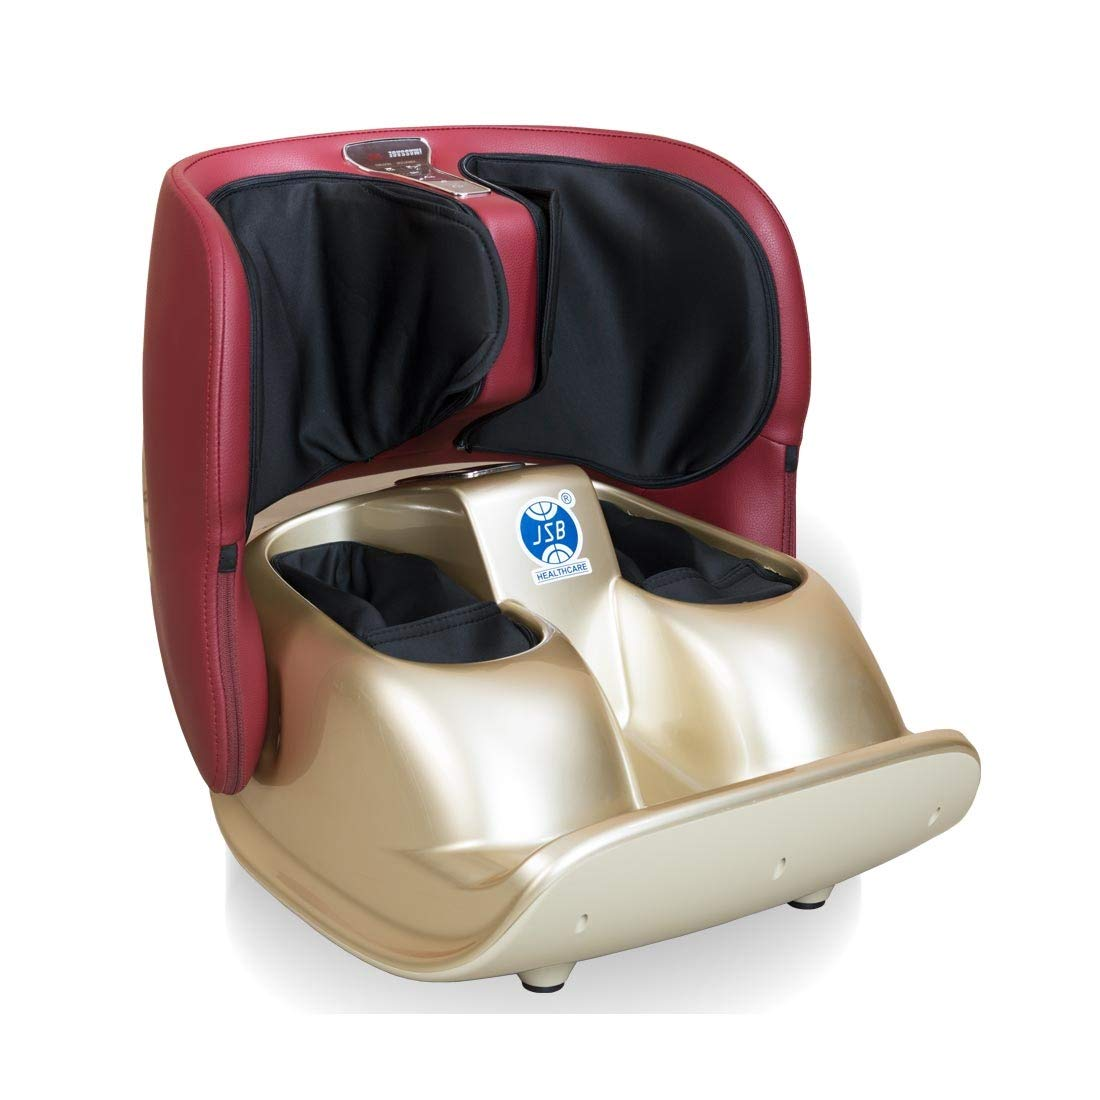 JSB Hf119 Calf and Airbags Compact Foot Massager Machine for Leg Pain Relief